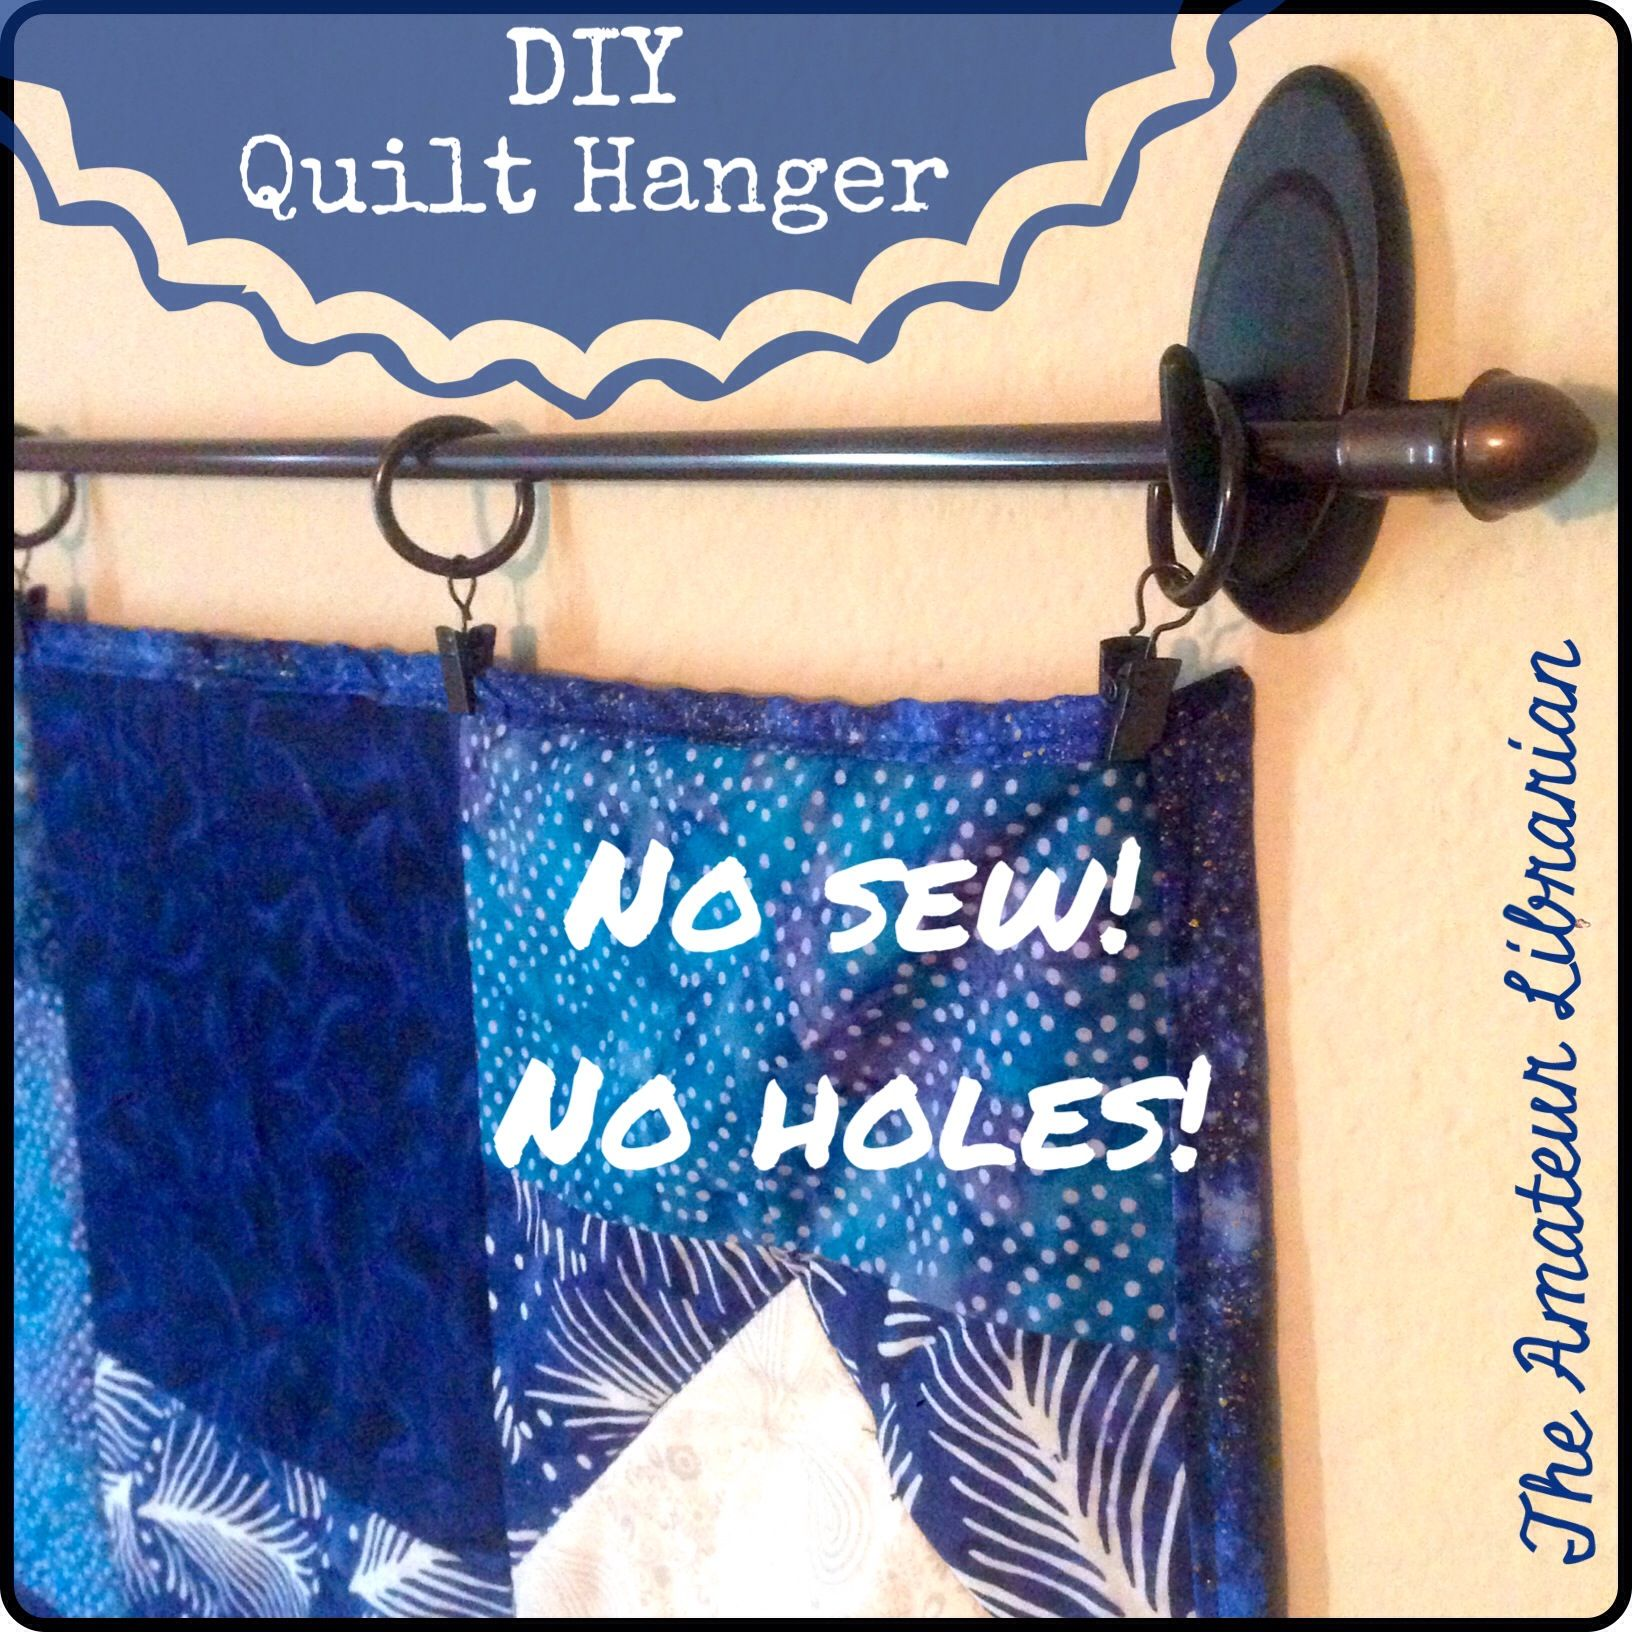 How To Hang A Quilt On The Wall hangers, quilt display, quilt holders, quilt hangers, wall